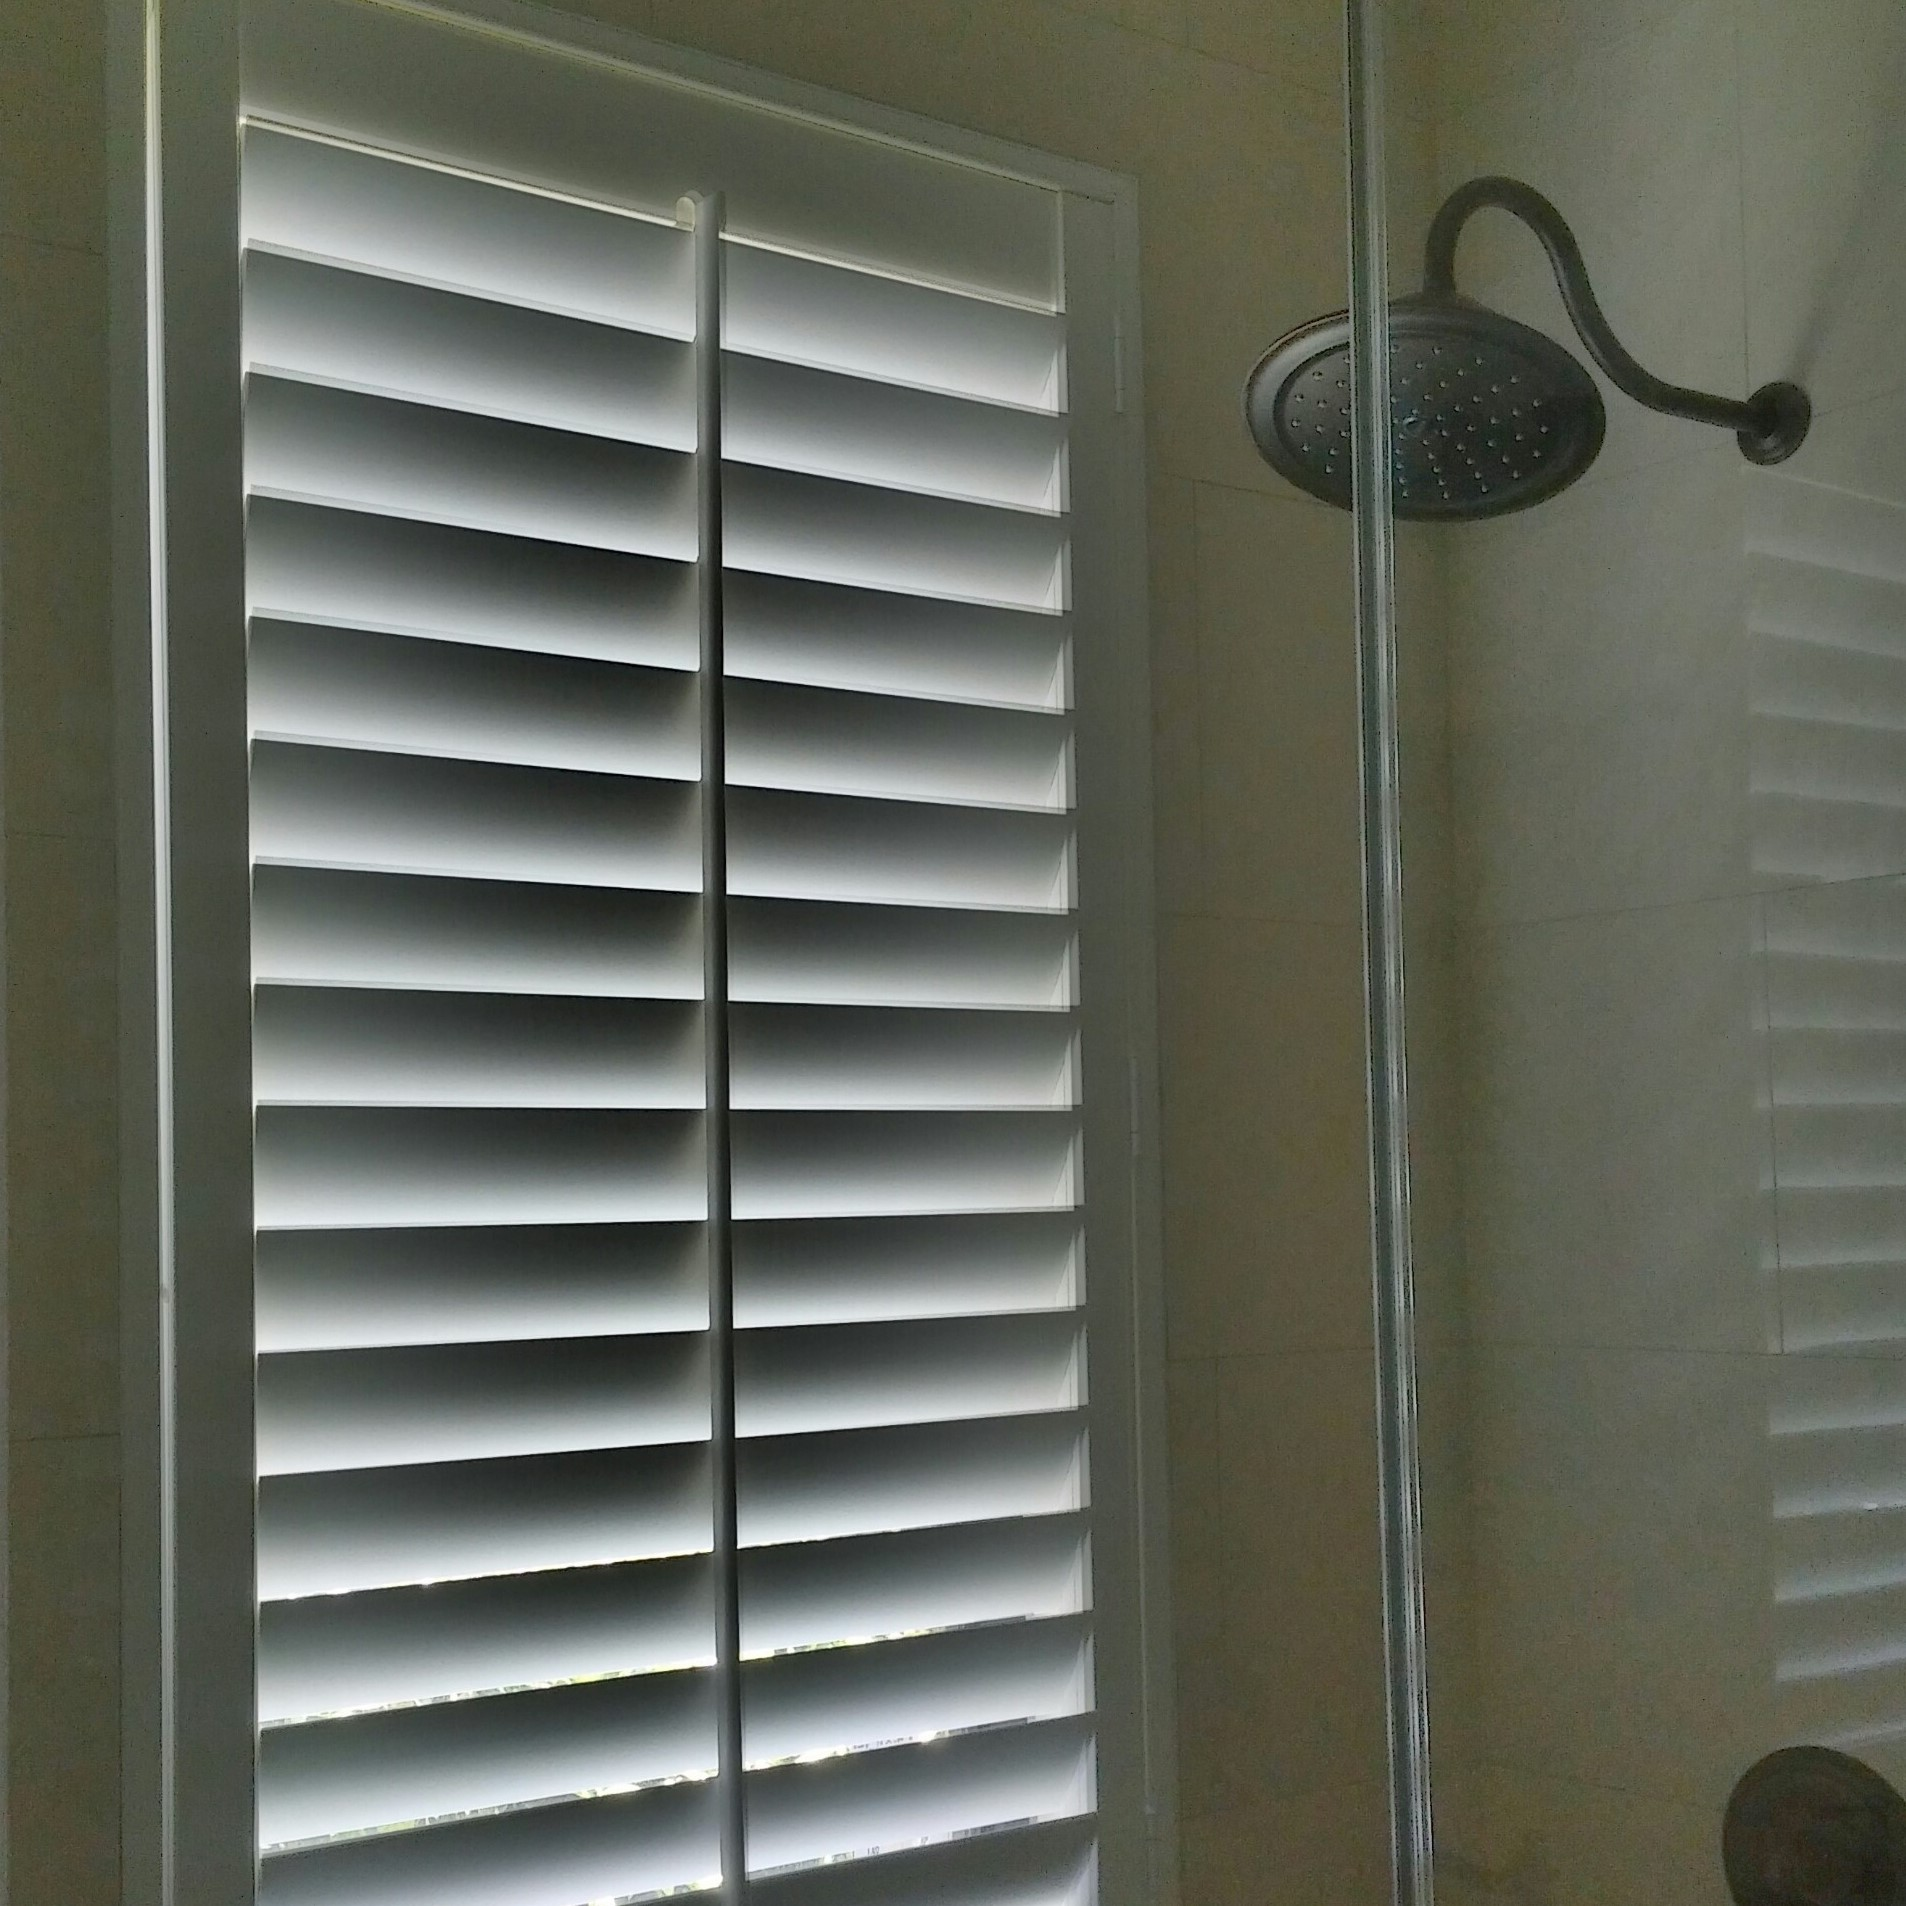 Ford Window Treatments Polysatin Waterproof Shutters Are Ideal For Windows In A Shower